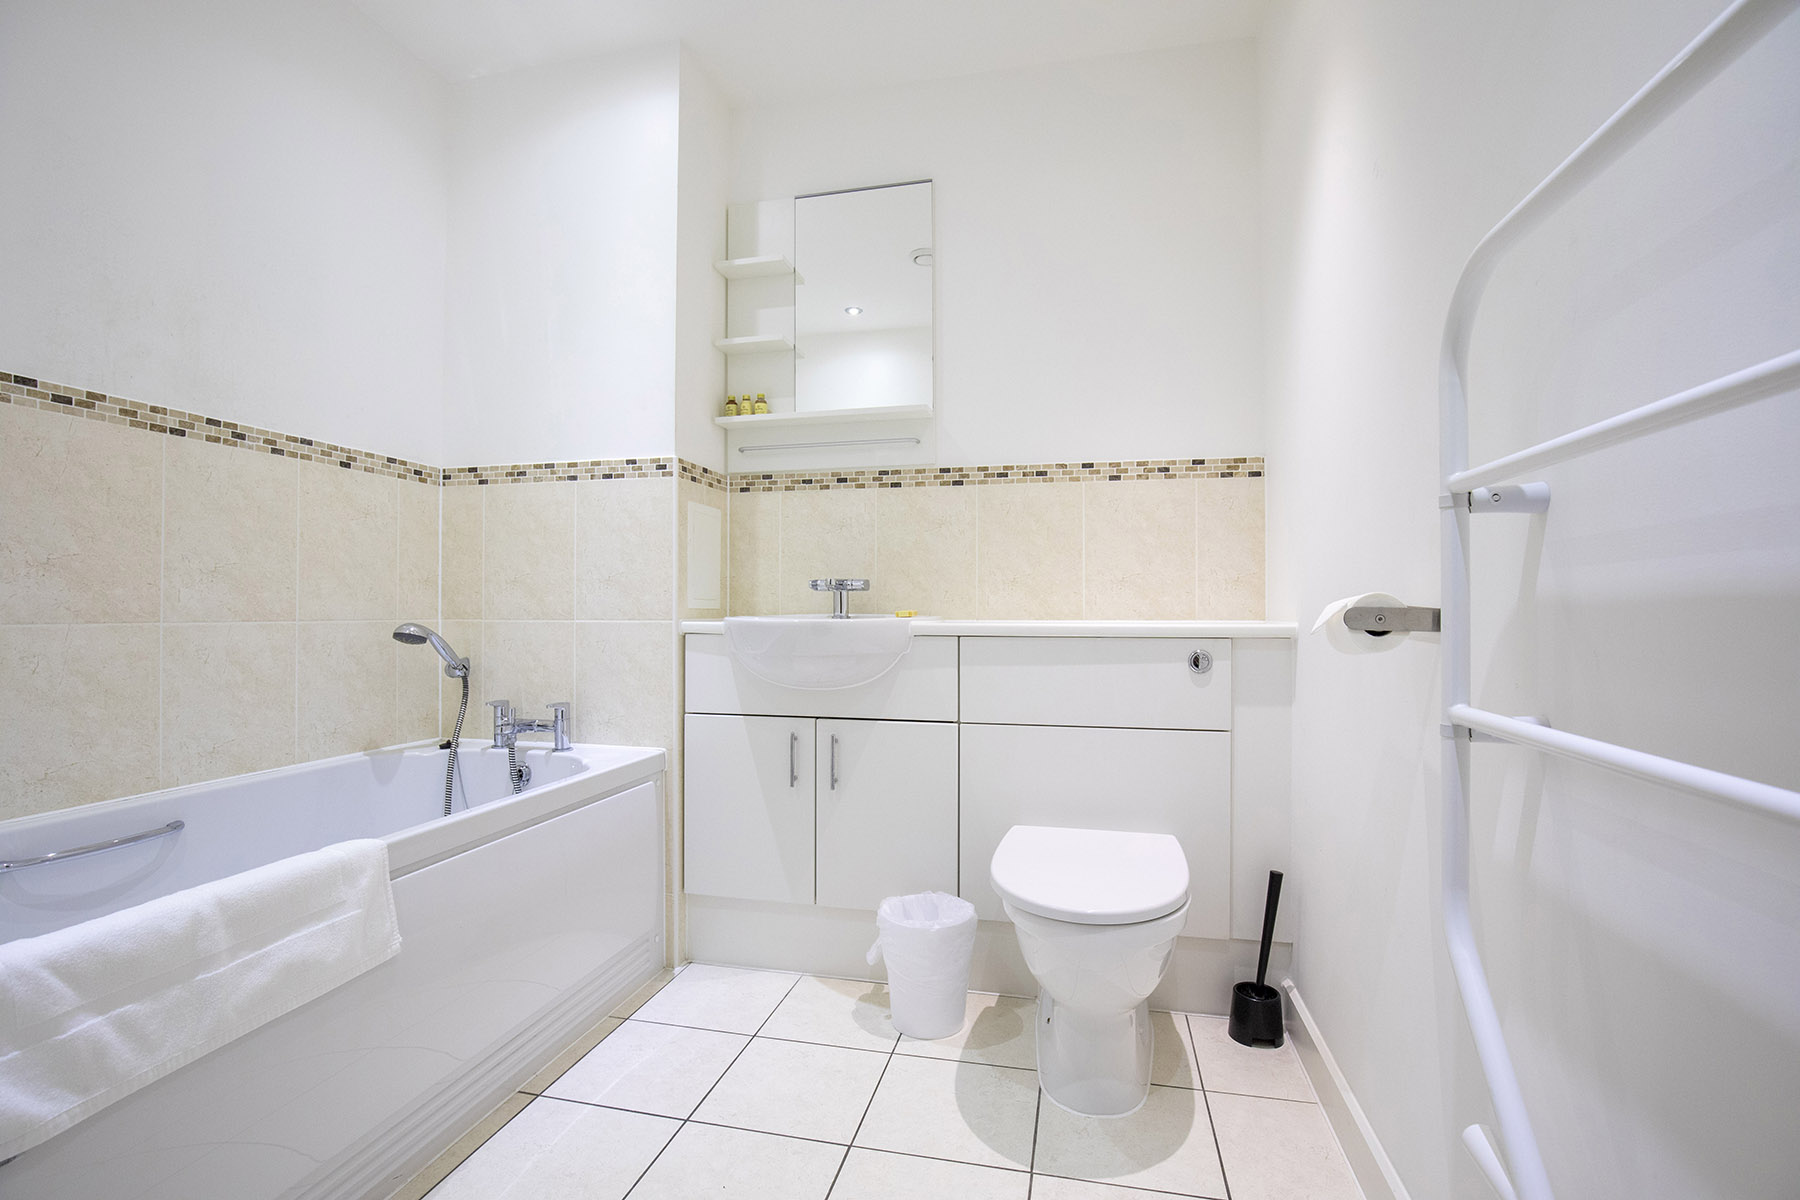 Bathroom at New Central Apartments, Centre, Woking - Citybase Apartments